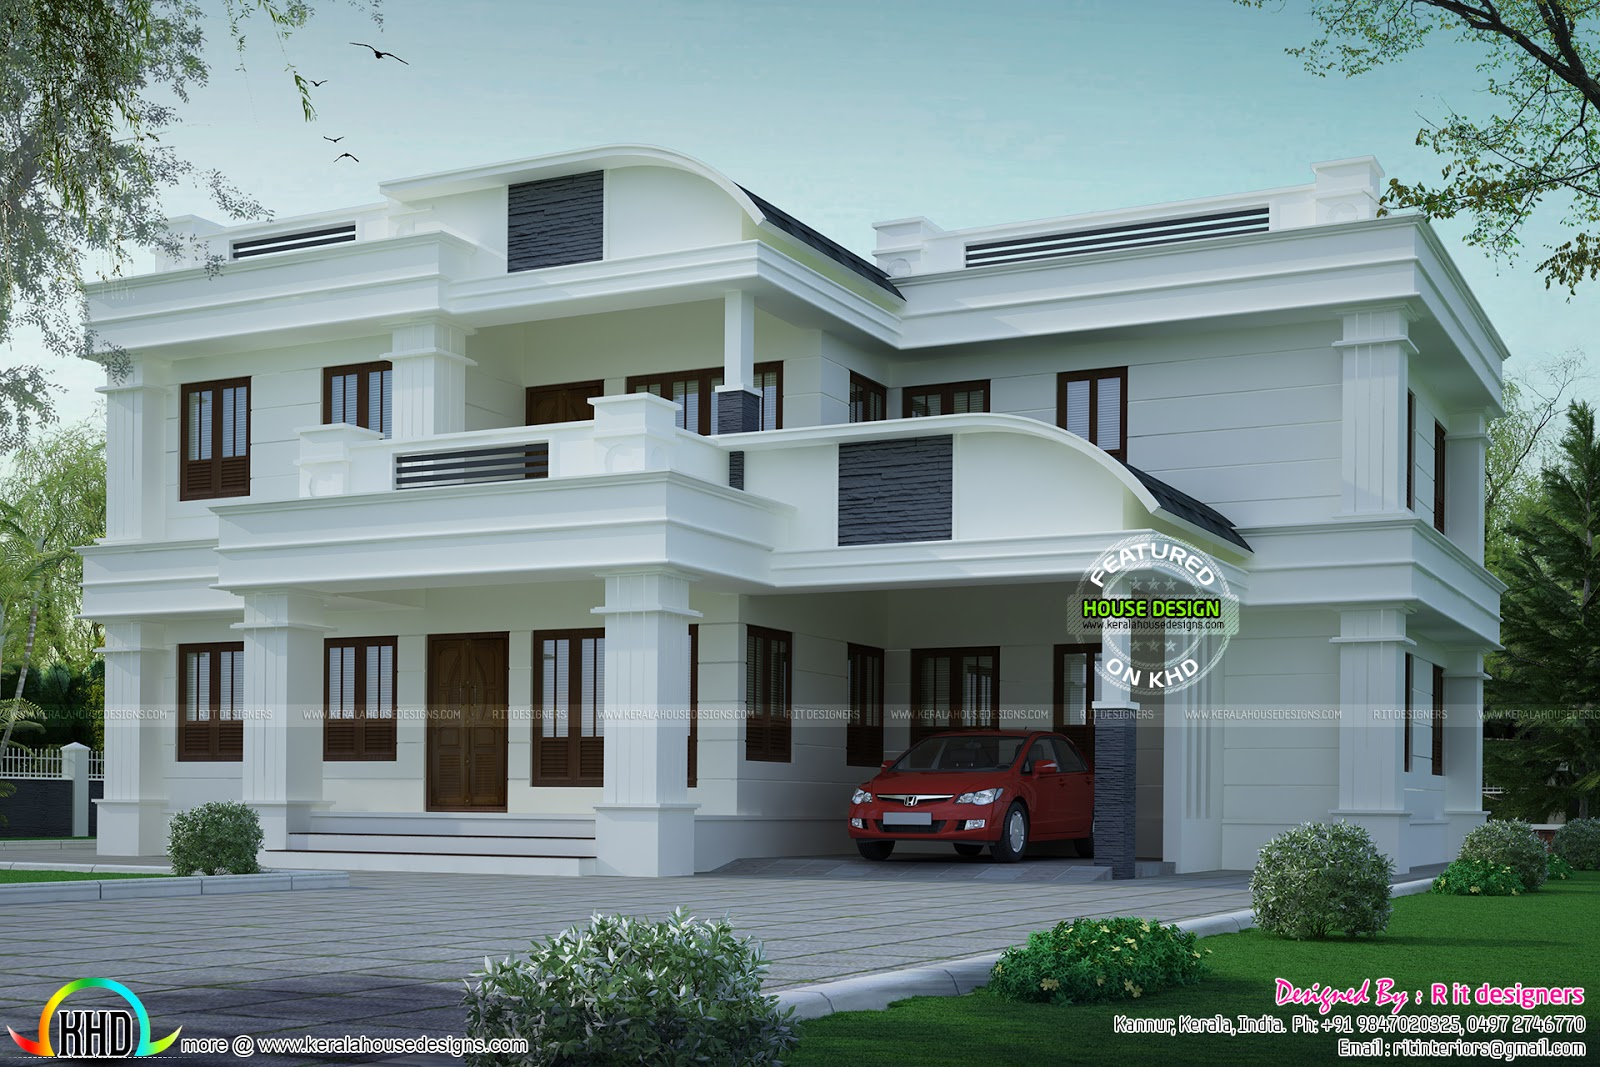 Curved roof mix house plan kerala home design and floor for Curved roof house plans